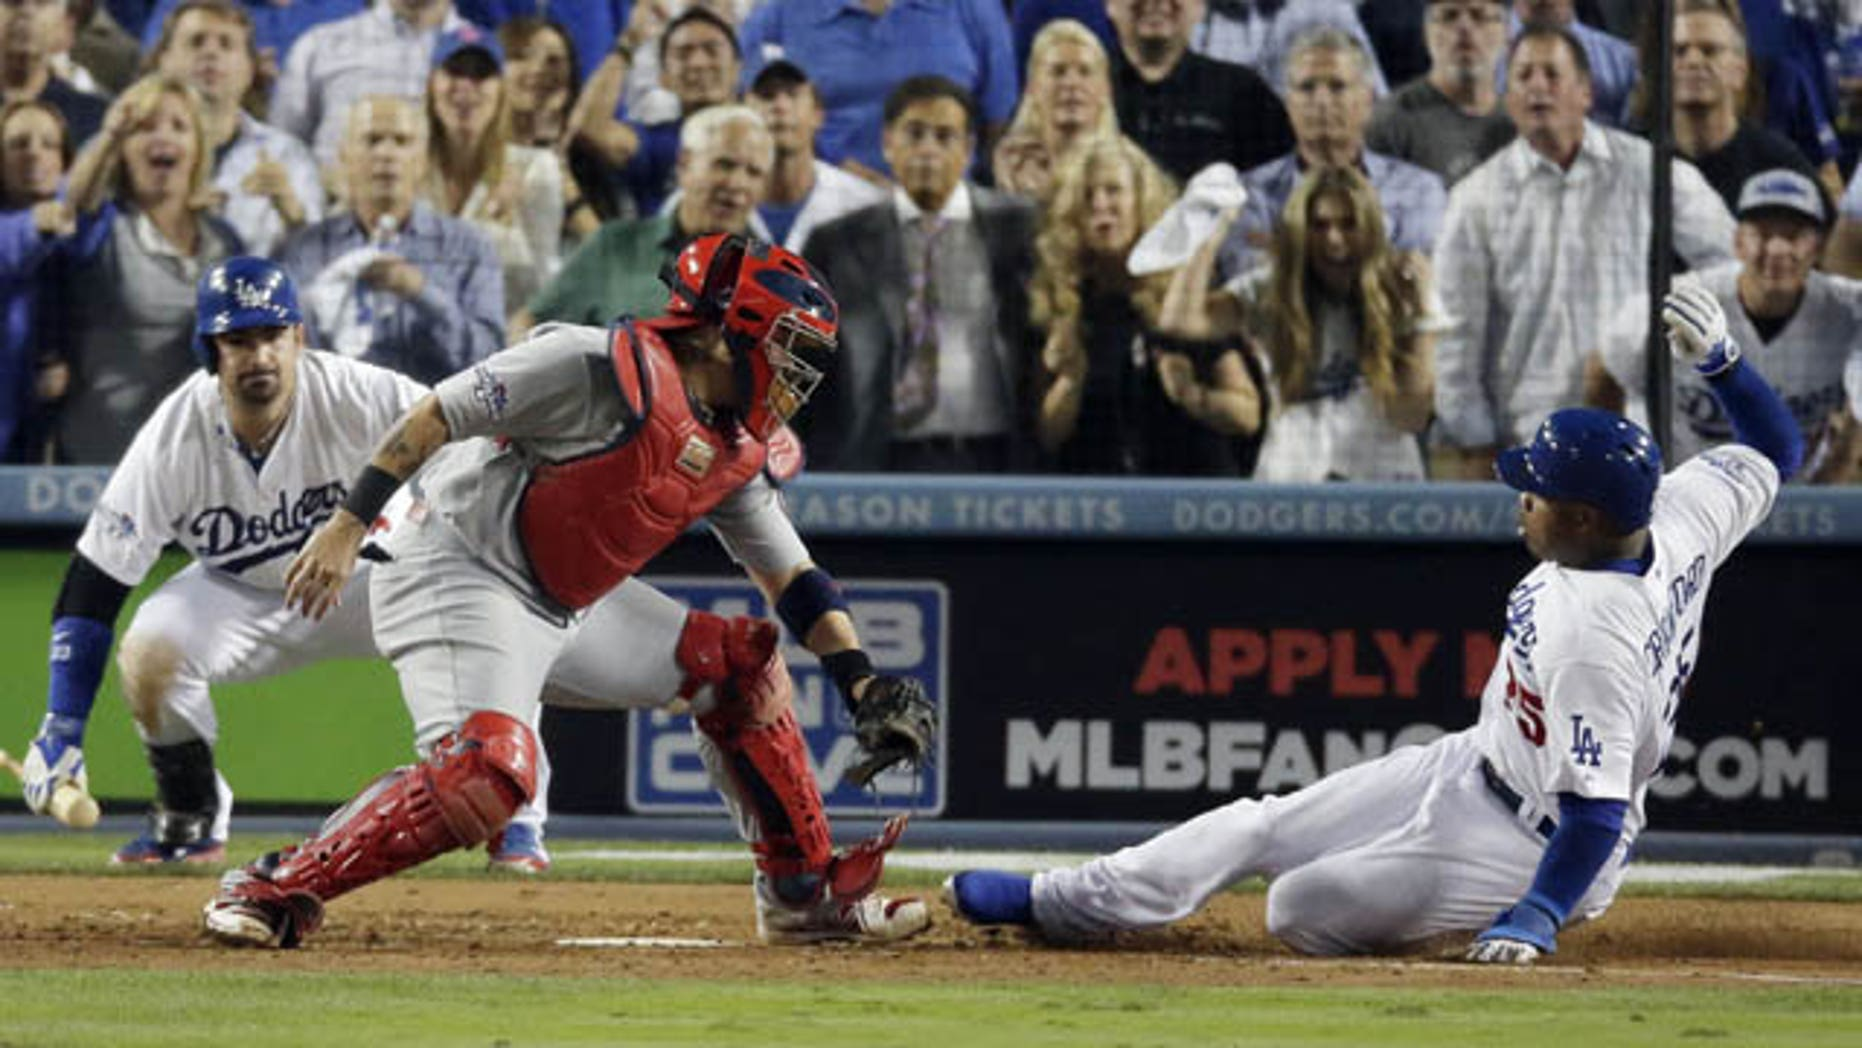 October 14, 2013: Carl Crawford slides safely past St. Louis Cardinals catcher Yadier Molina during the eighth inning of Game 3 of the National League baseball championship series Monday in Los Angeles. (AP Photo/Chris Carlson)